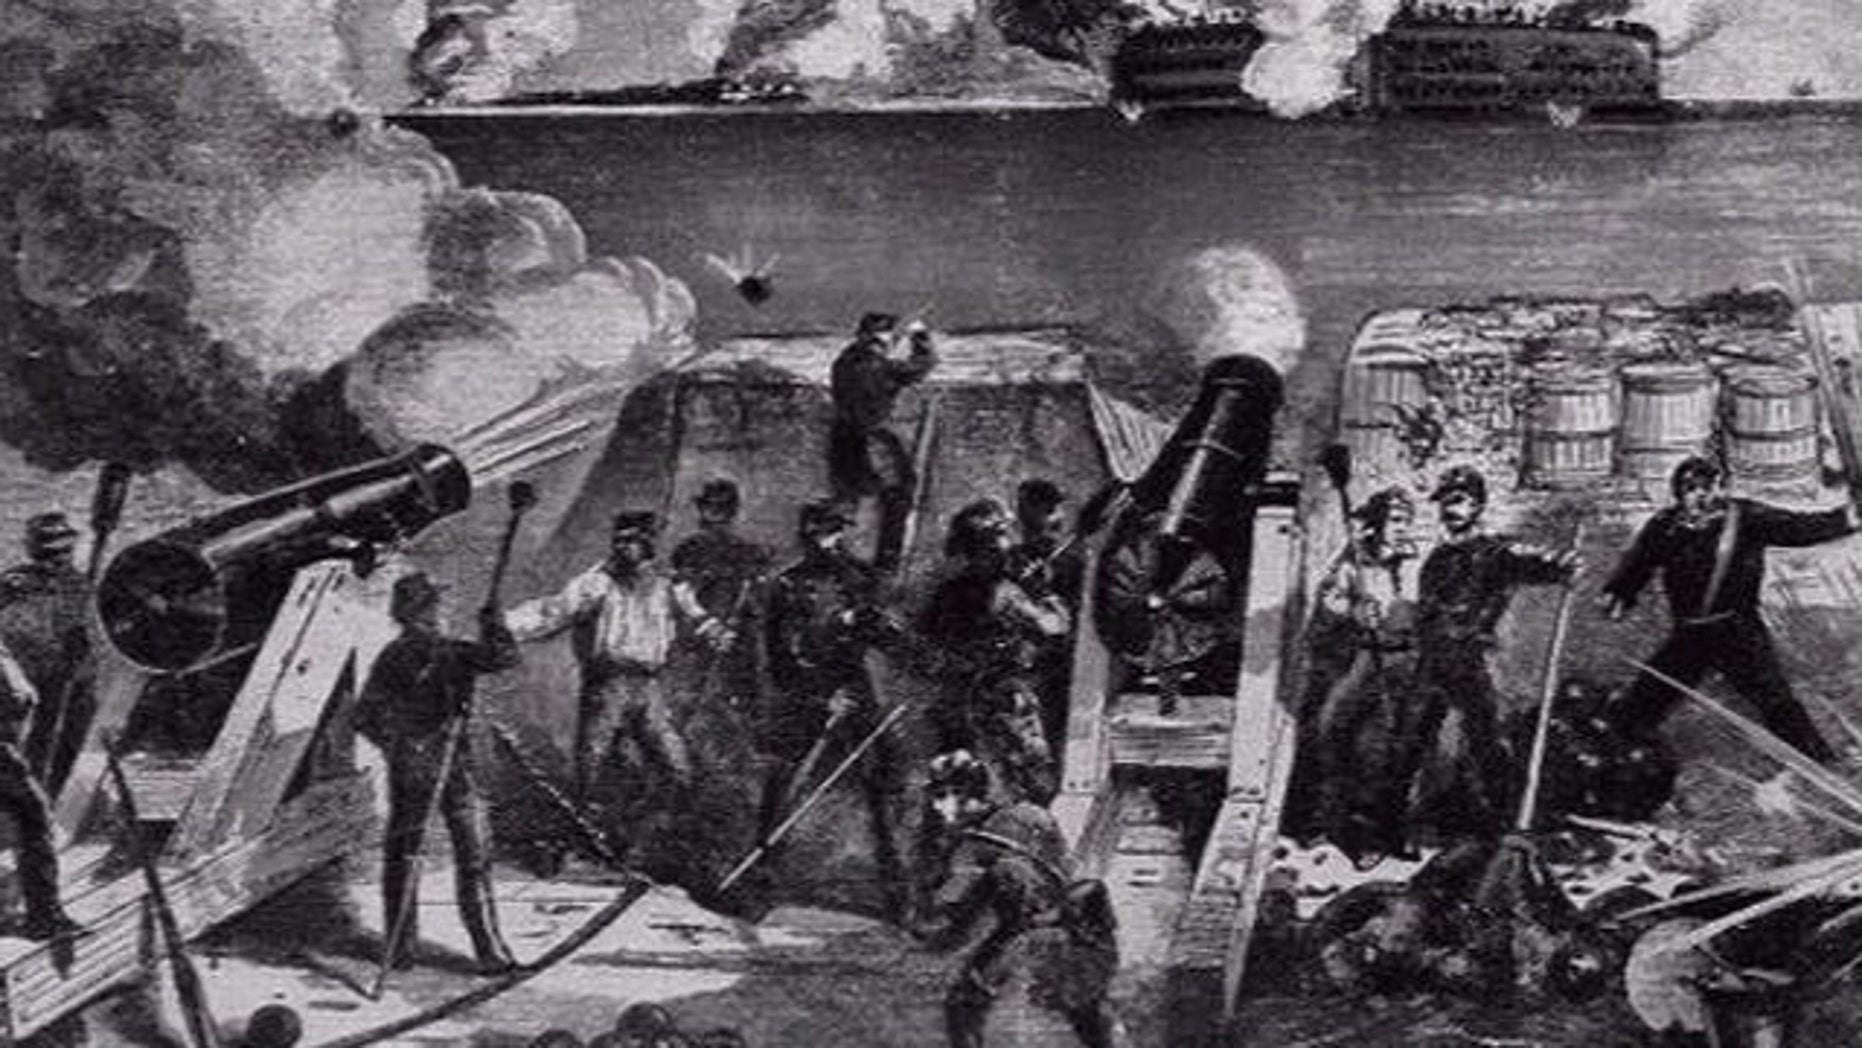 A black and white etching depicts Confederate soldiers fire on Fort Sumpter, beginning the U.S. Civil War.